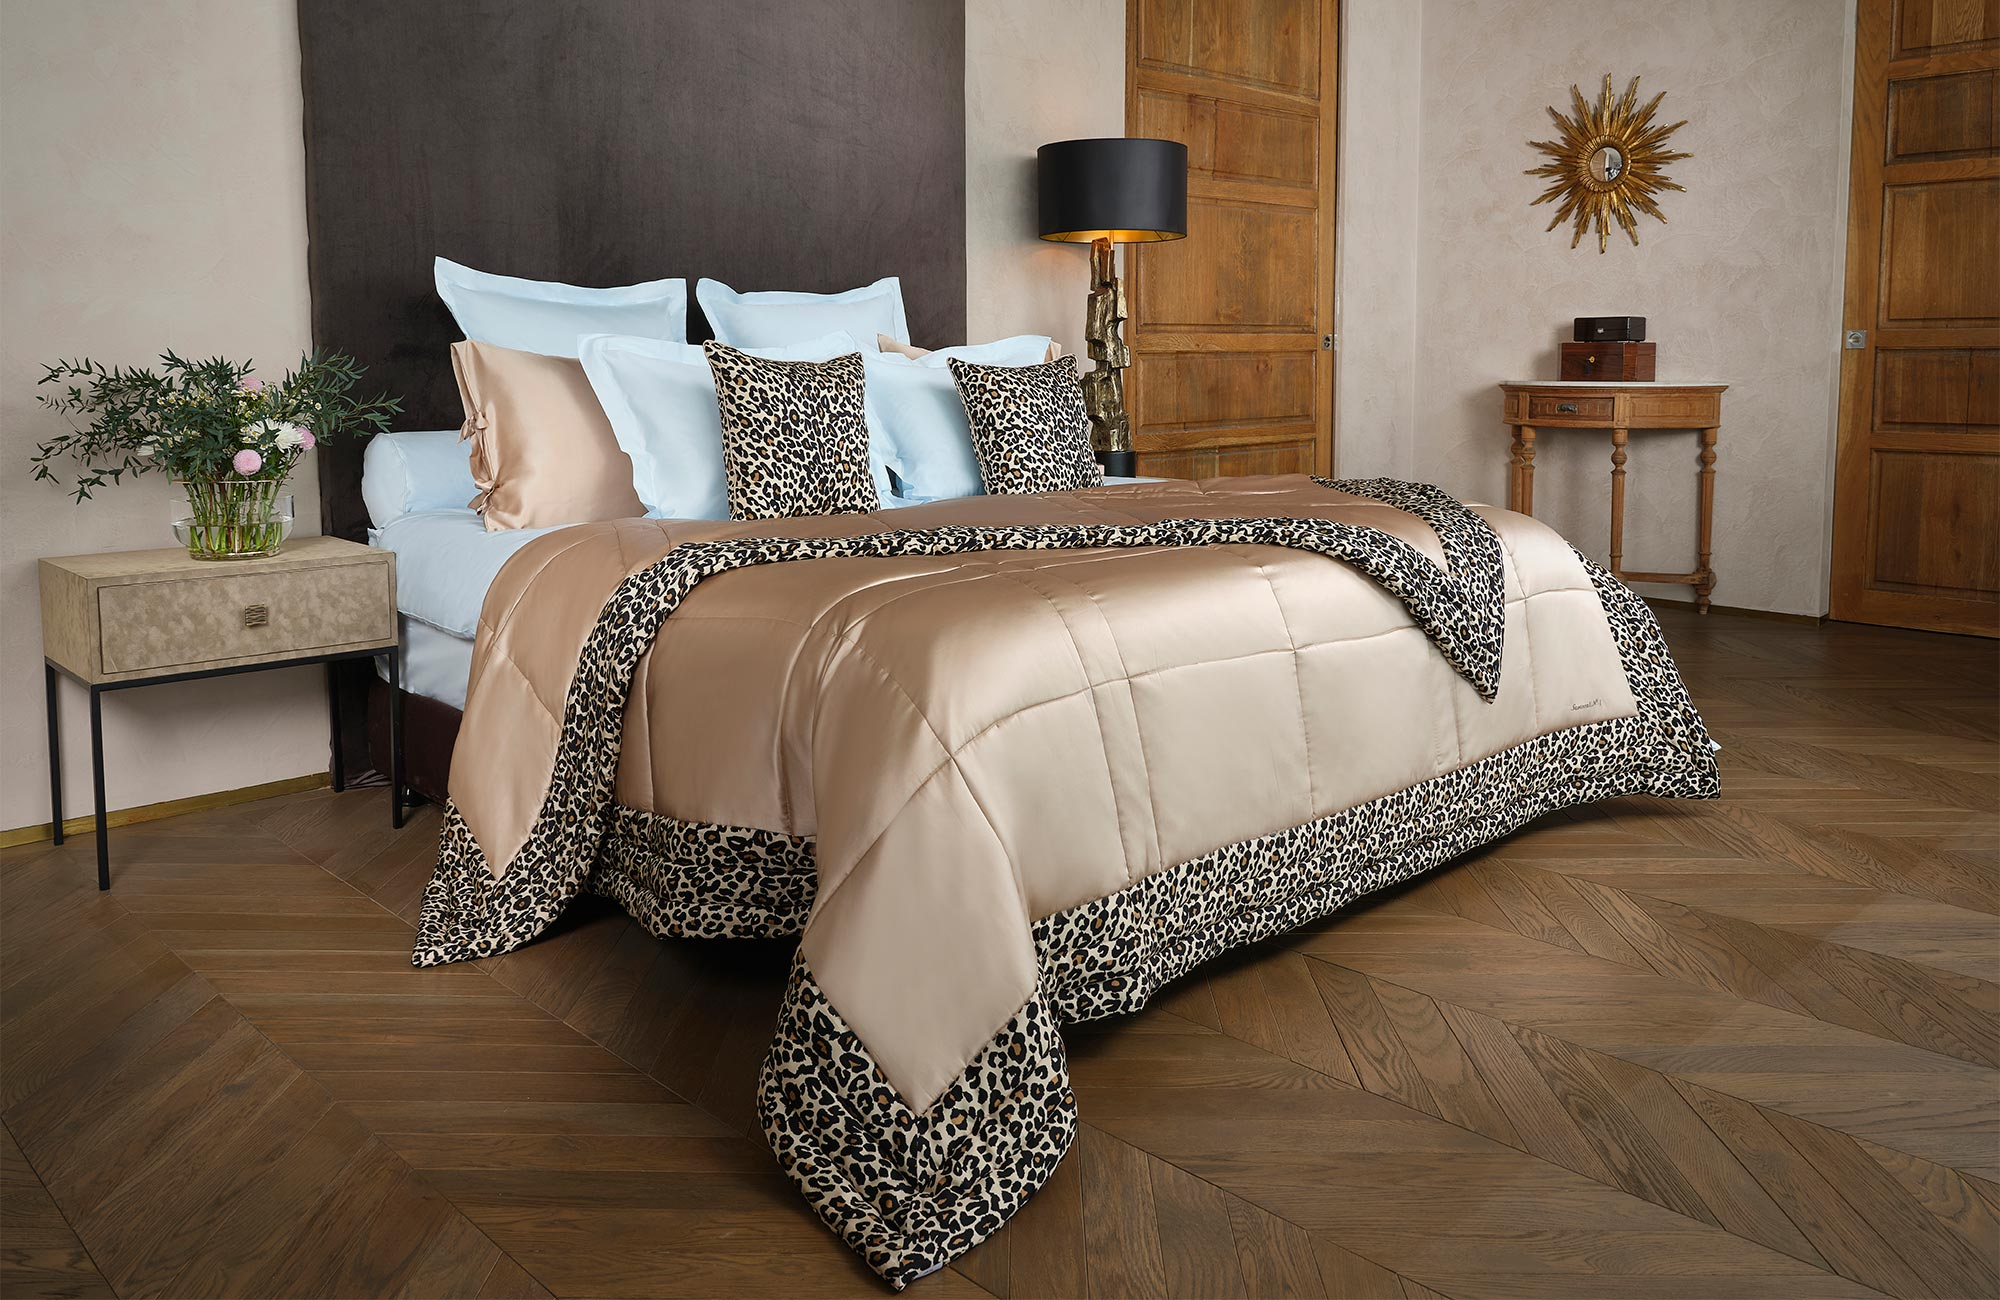 Leopard print silk bed cover